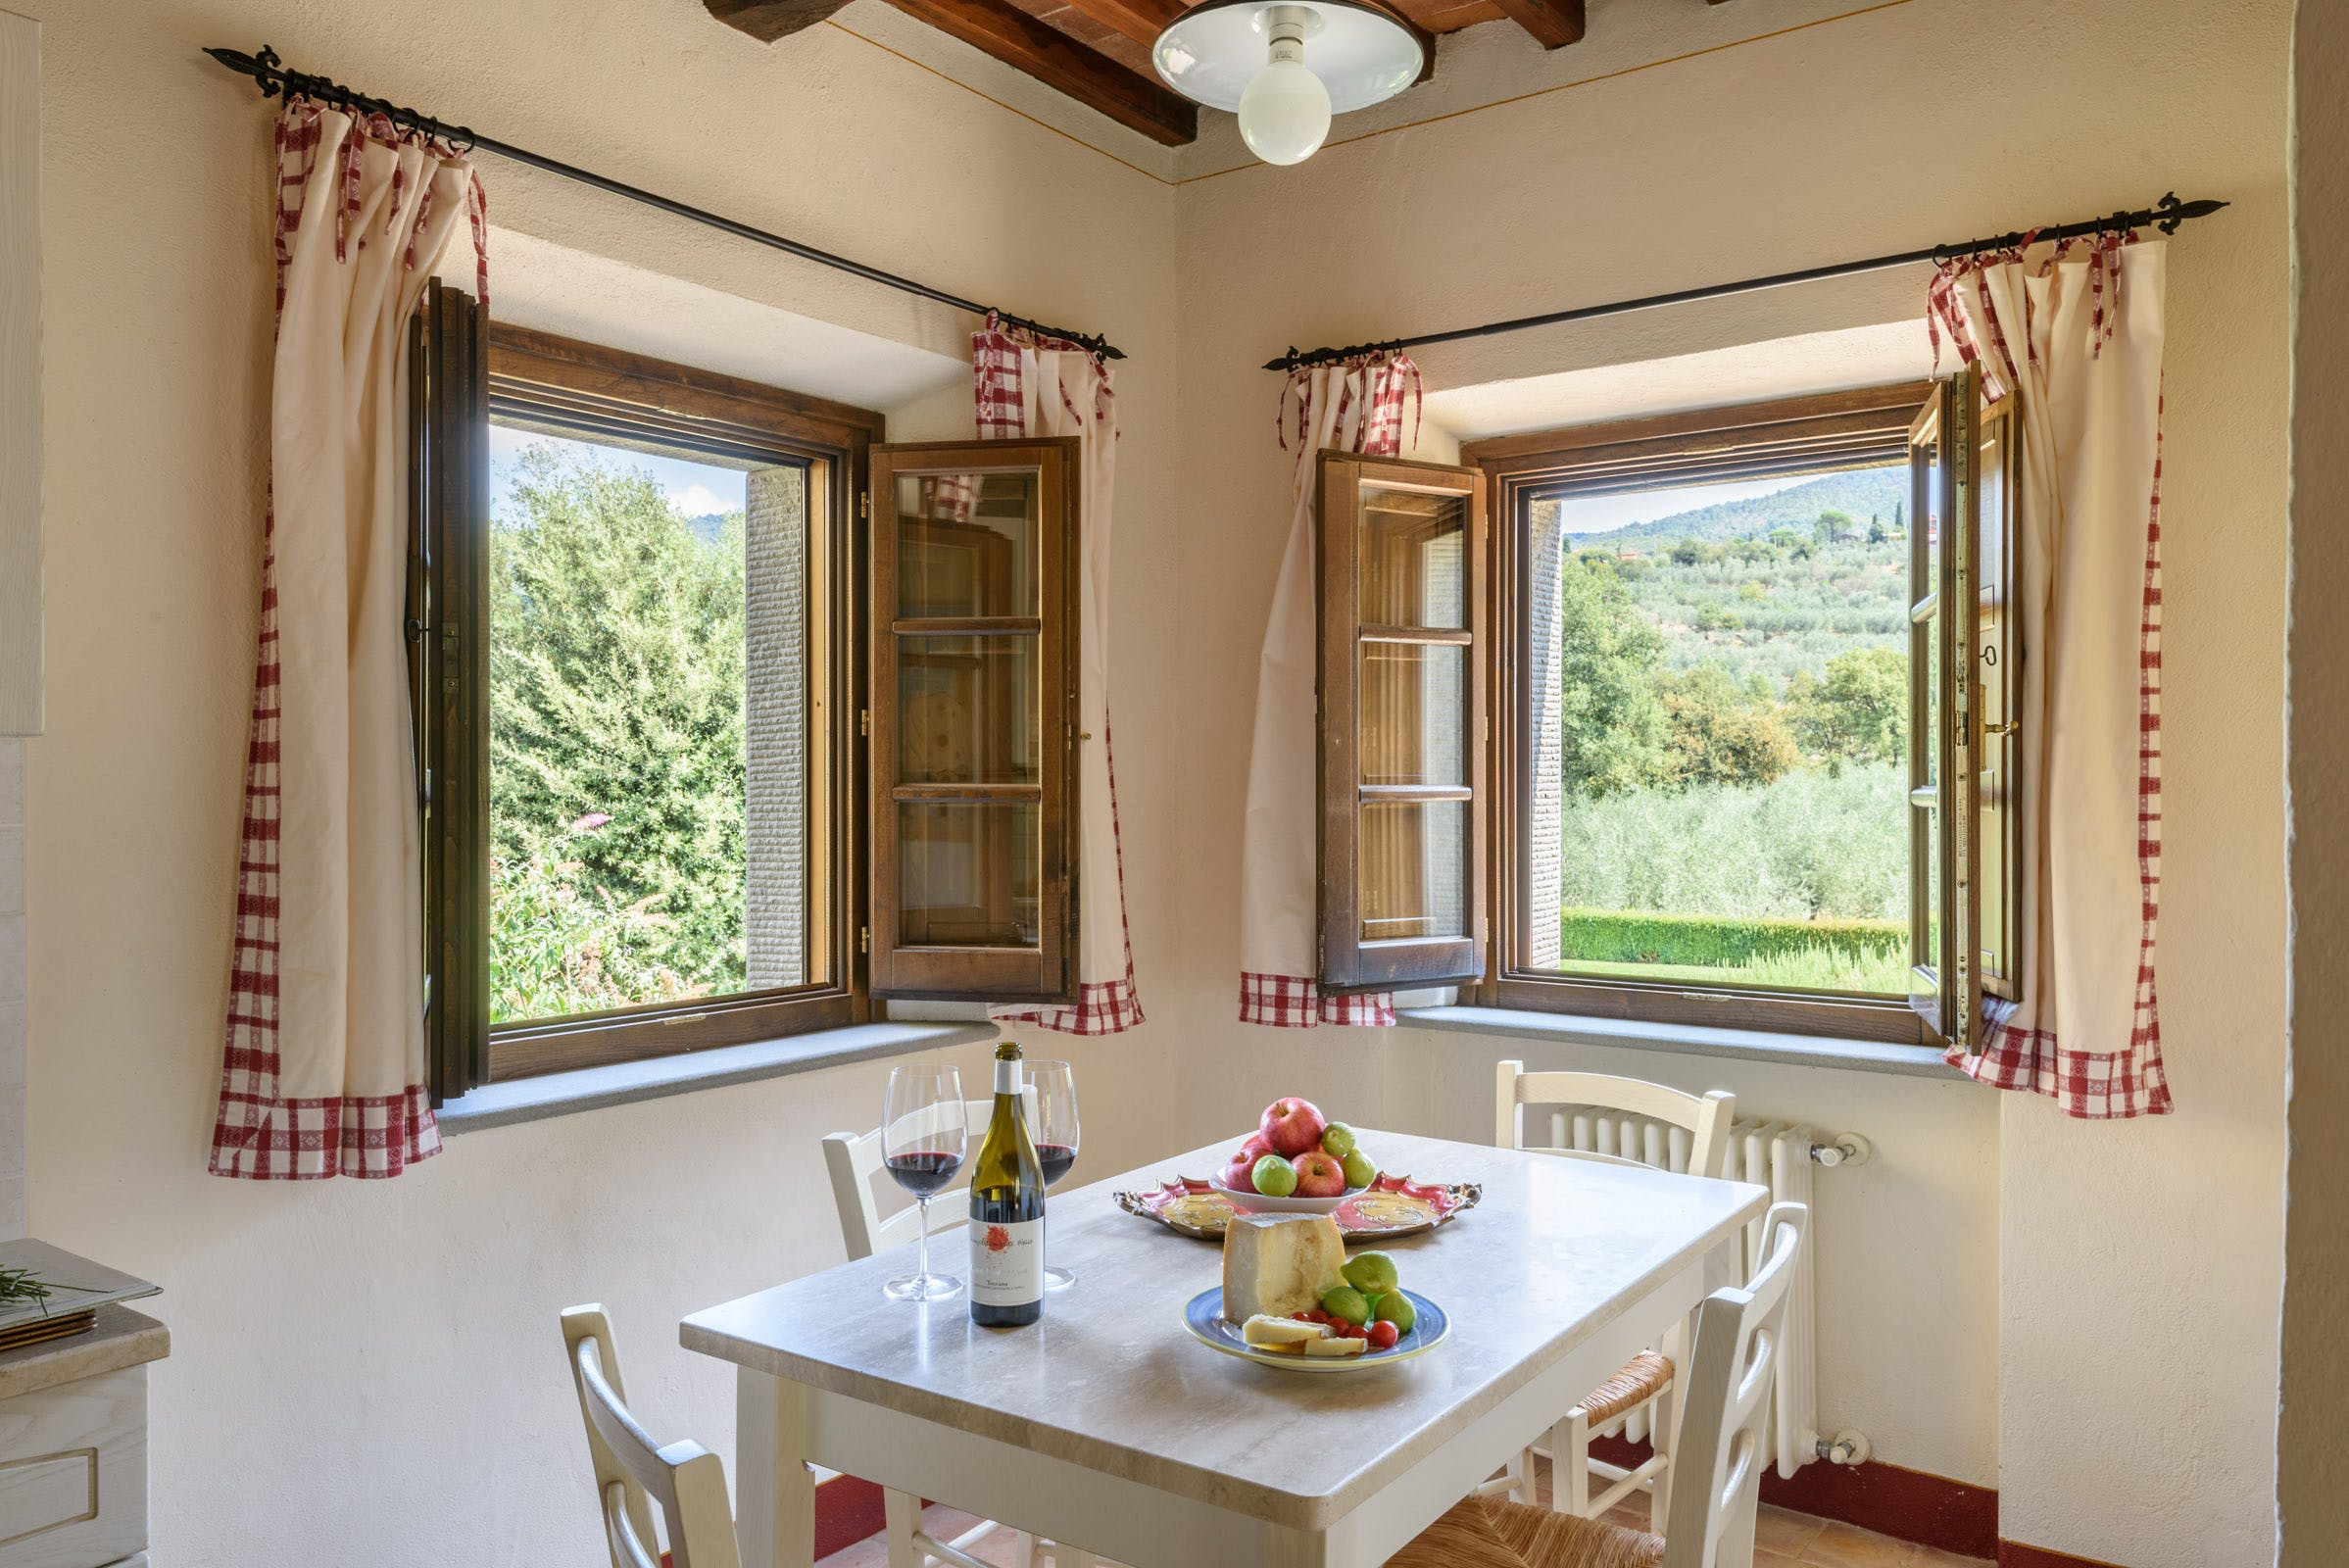 Casa Portagioia Tuscany bed and breakfast , Andreocci suite dining